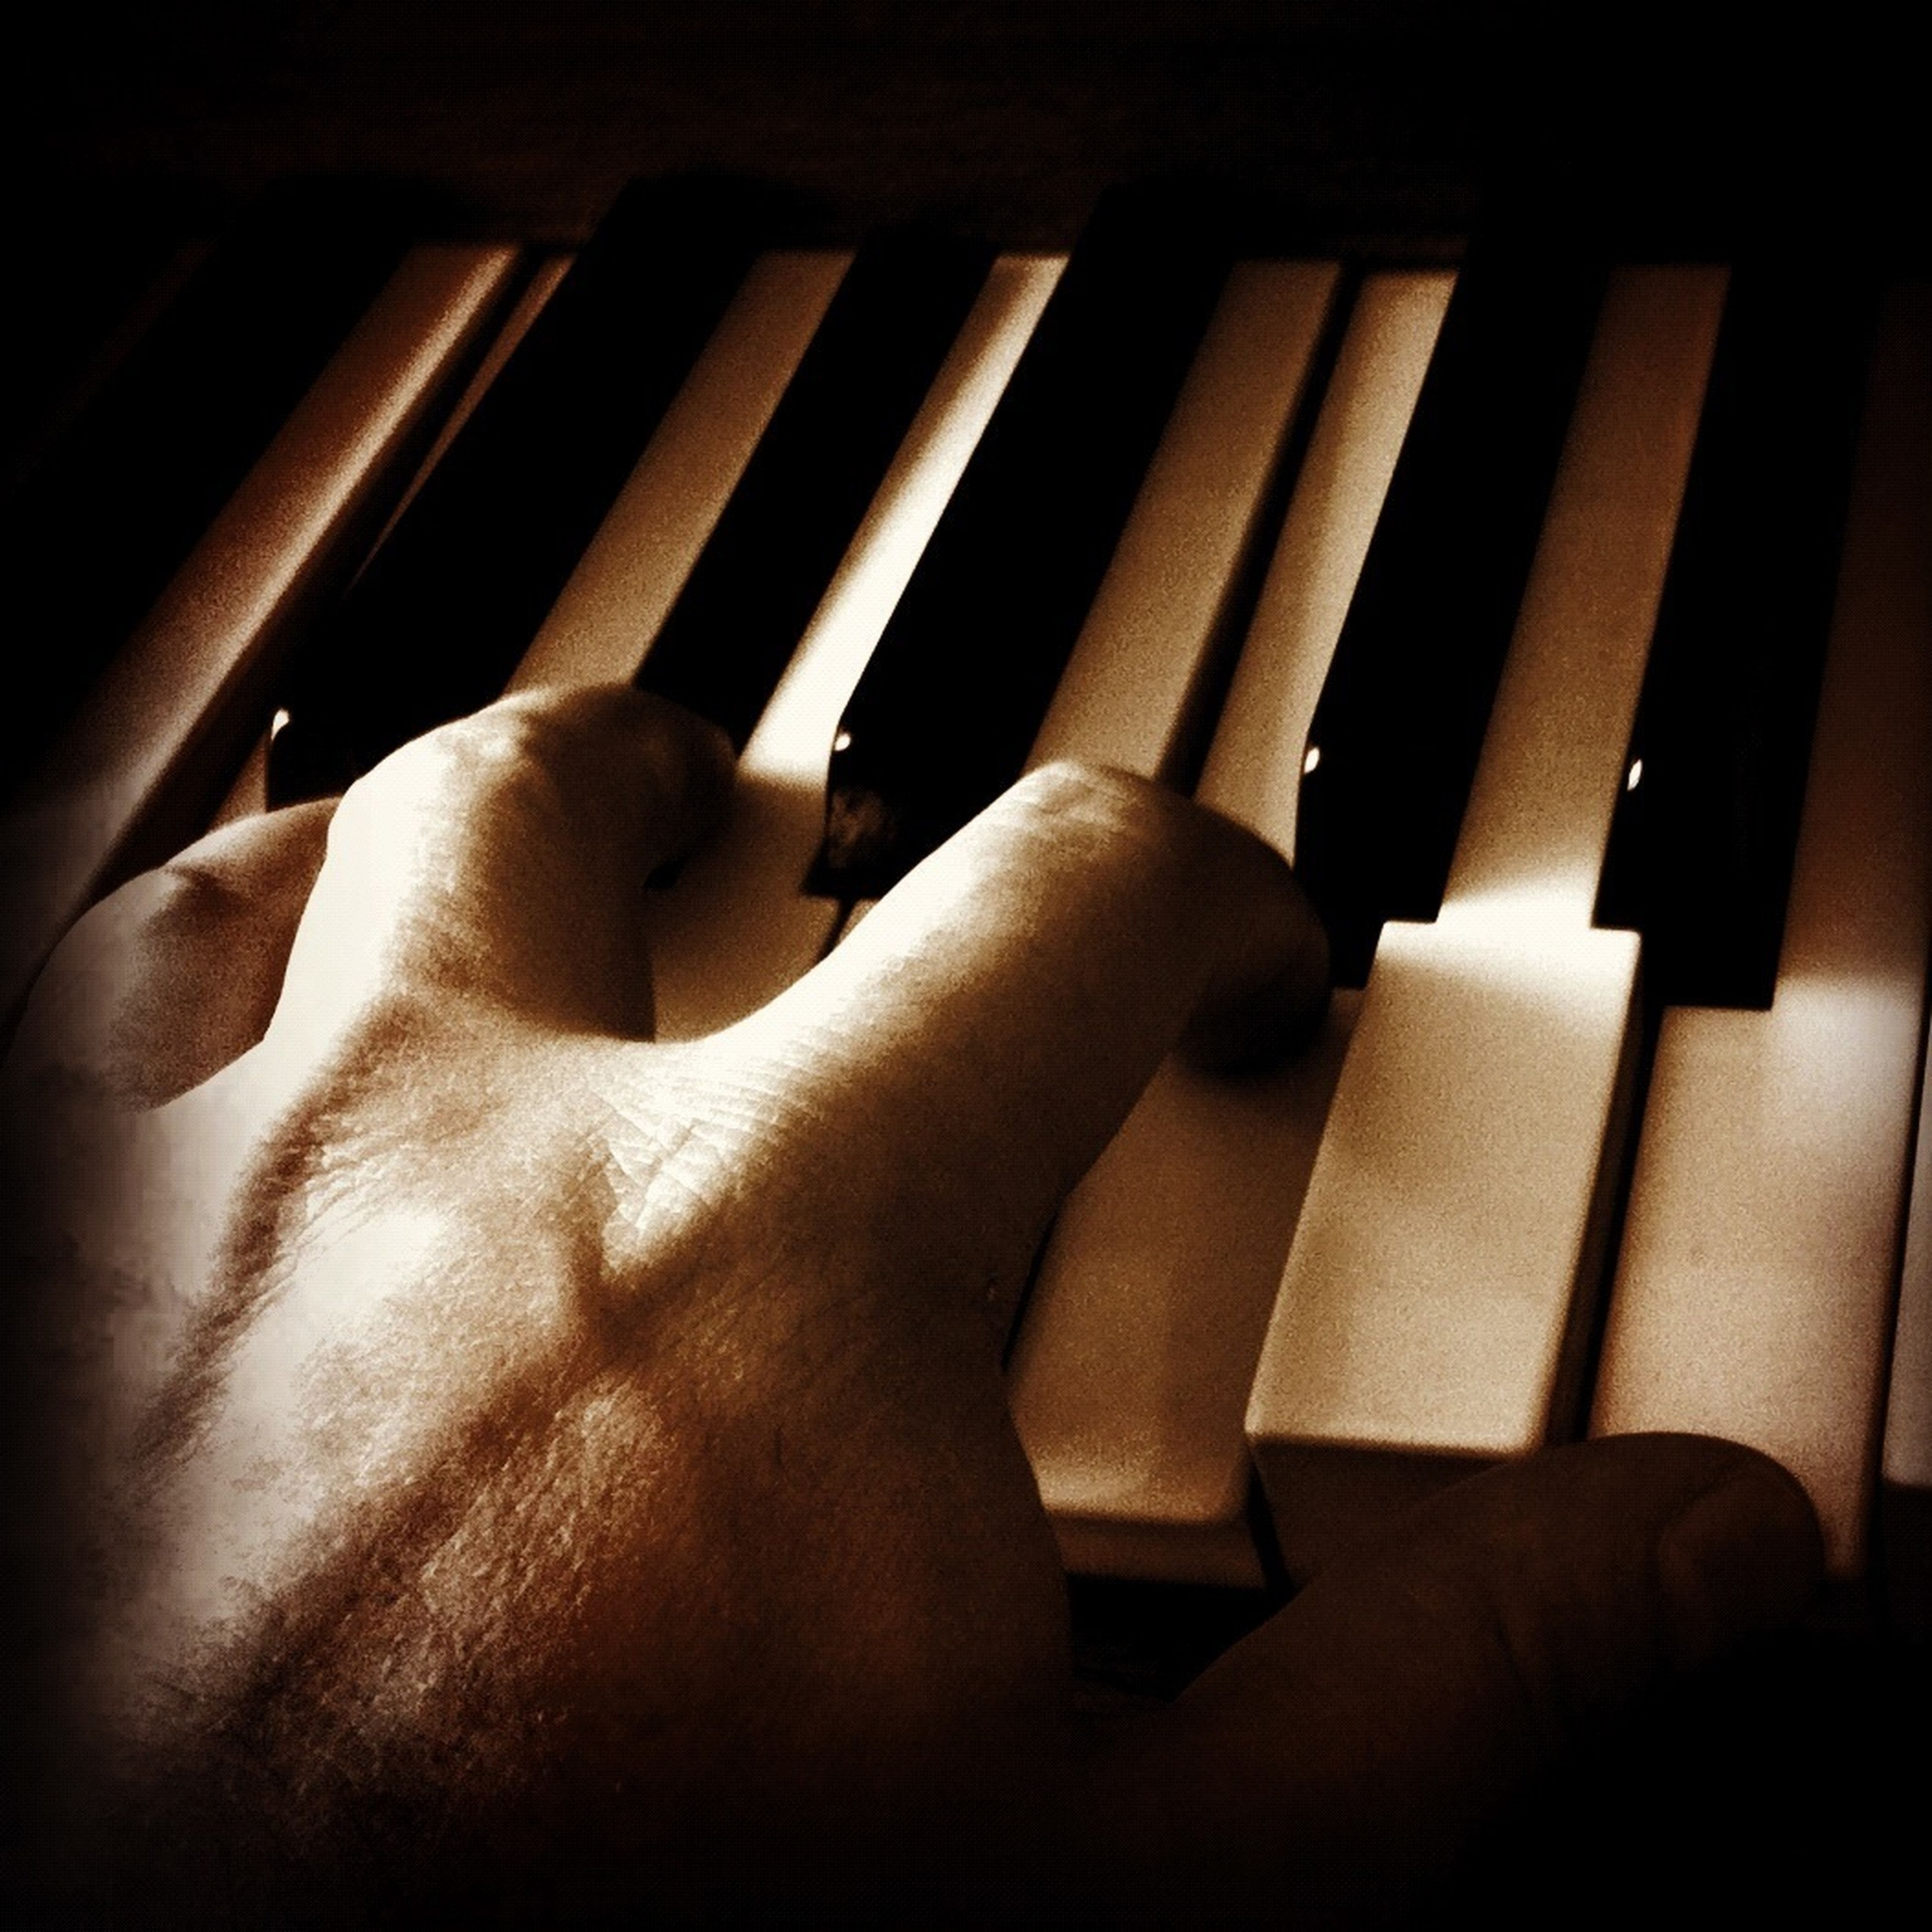 indoors, person, part of, cropped, human finger, close-up, unrecognizable person, lifestyles, relaxation, home interior, leisure activity, piano, men, music, dark, piano key